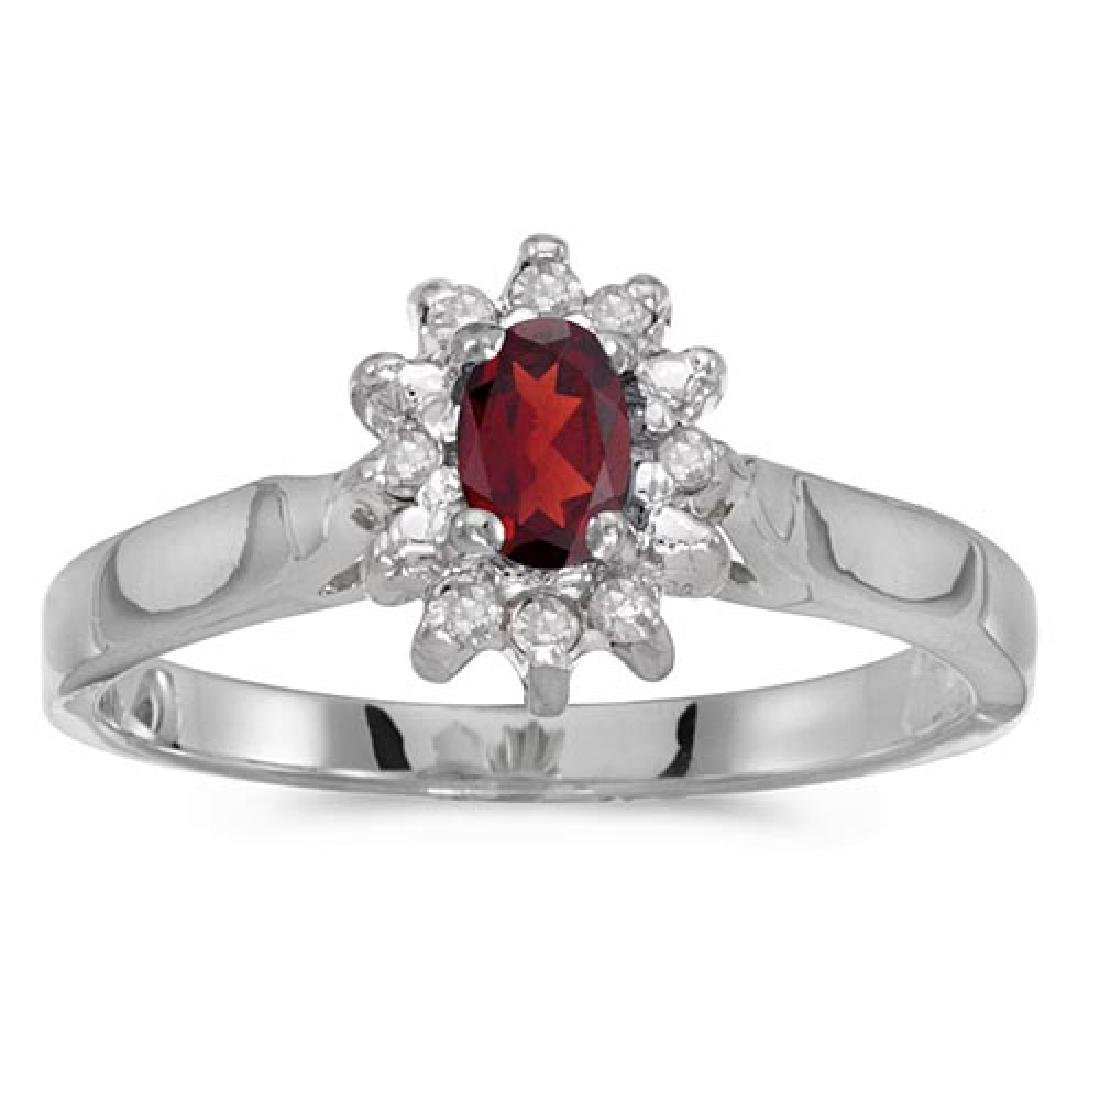 Certified 10k White Gold Oval Garnet And Diamond Ring